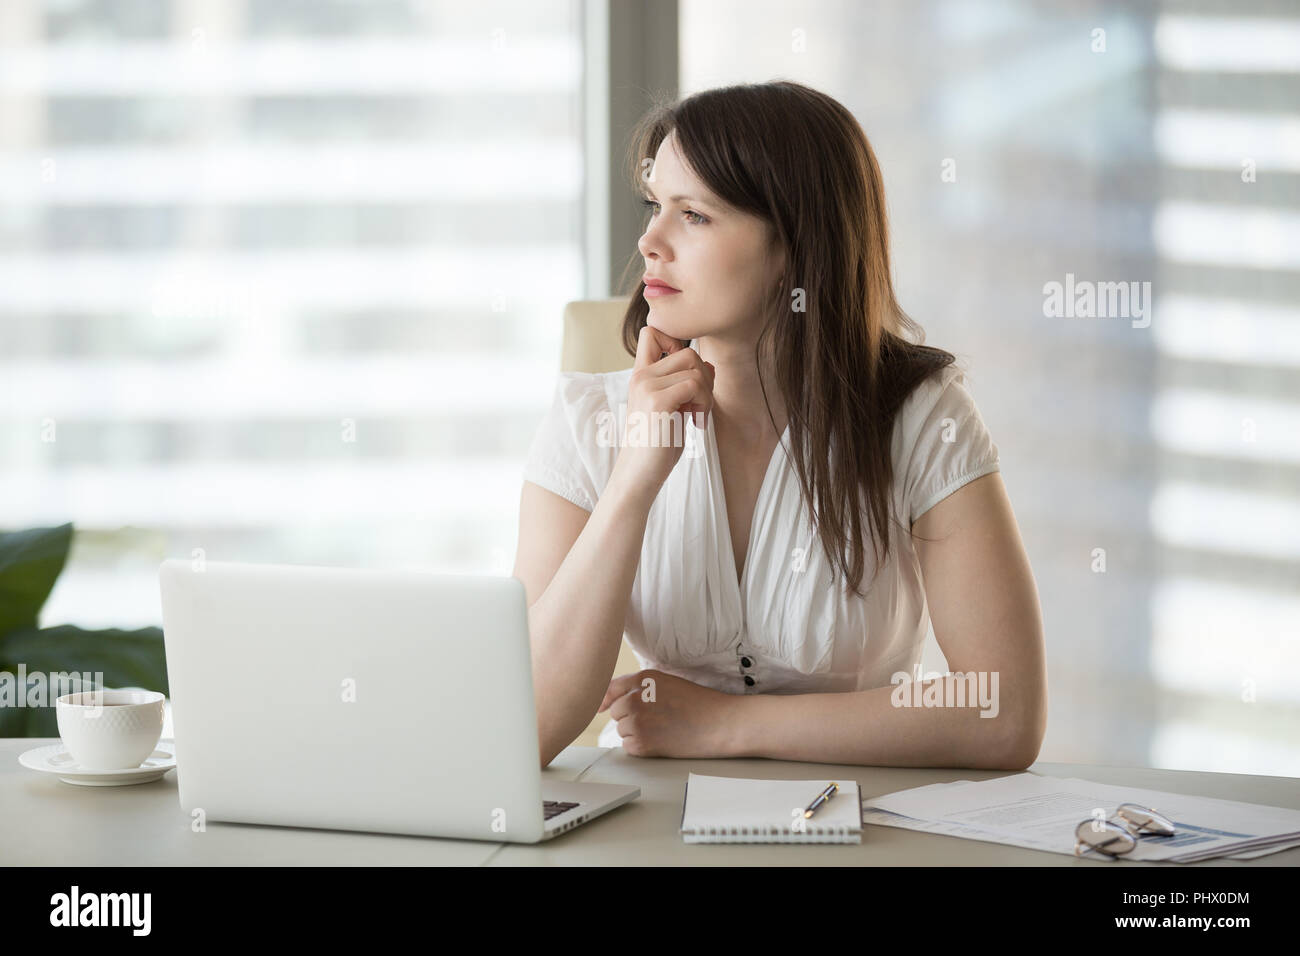 Thoughtful doubtful businesswoman looking away thinking of probl - Stock Image